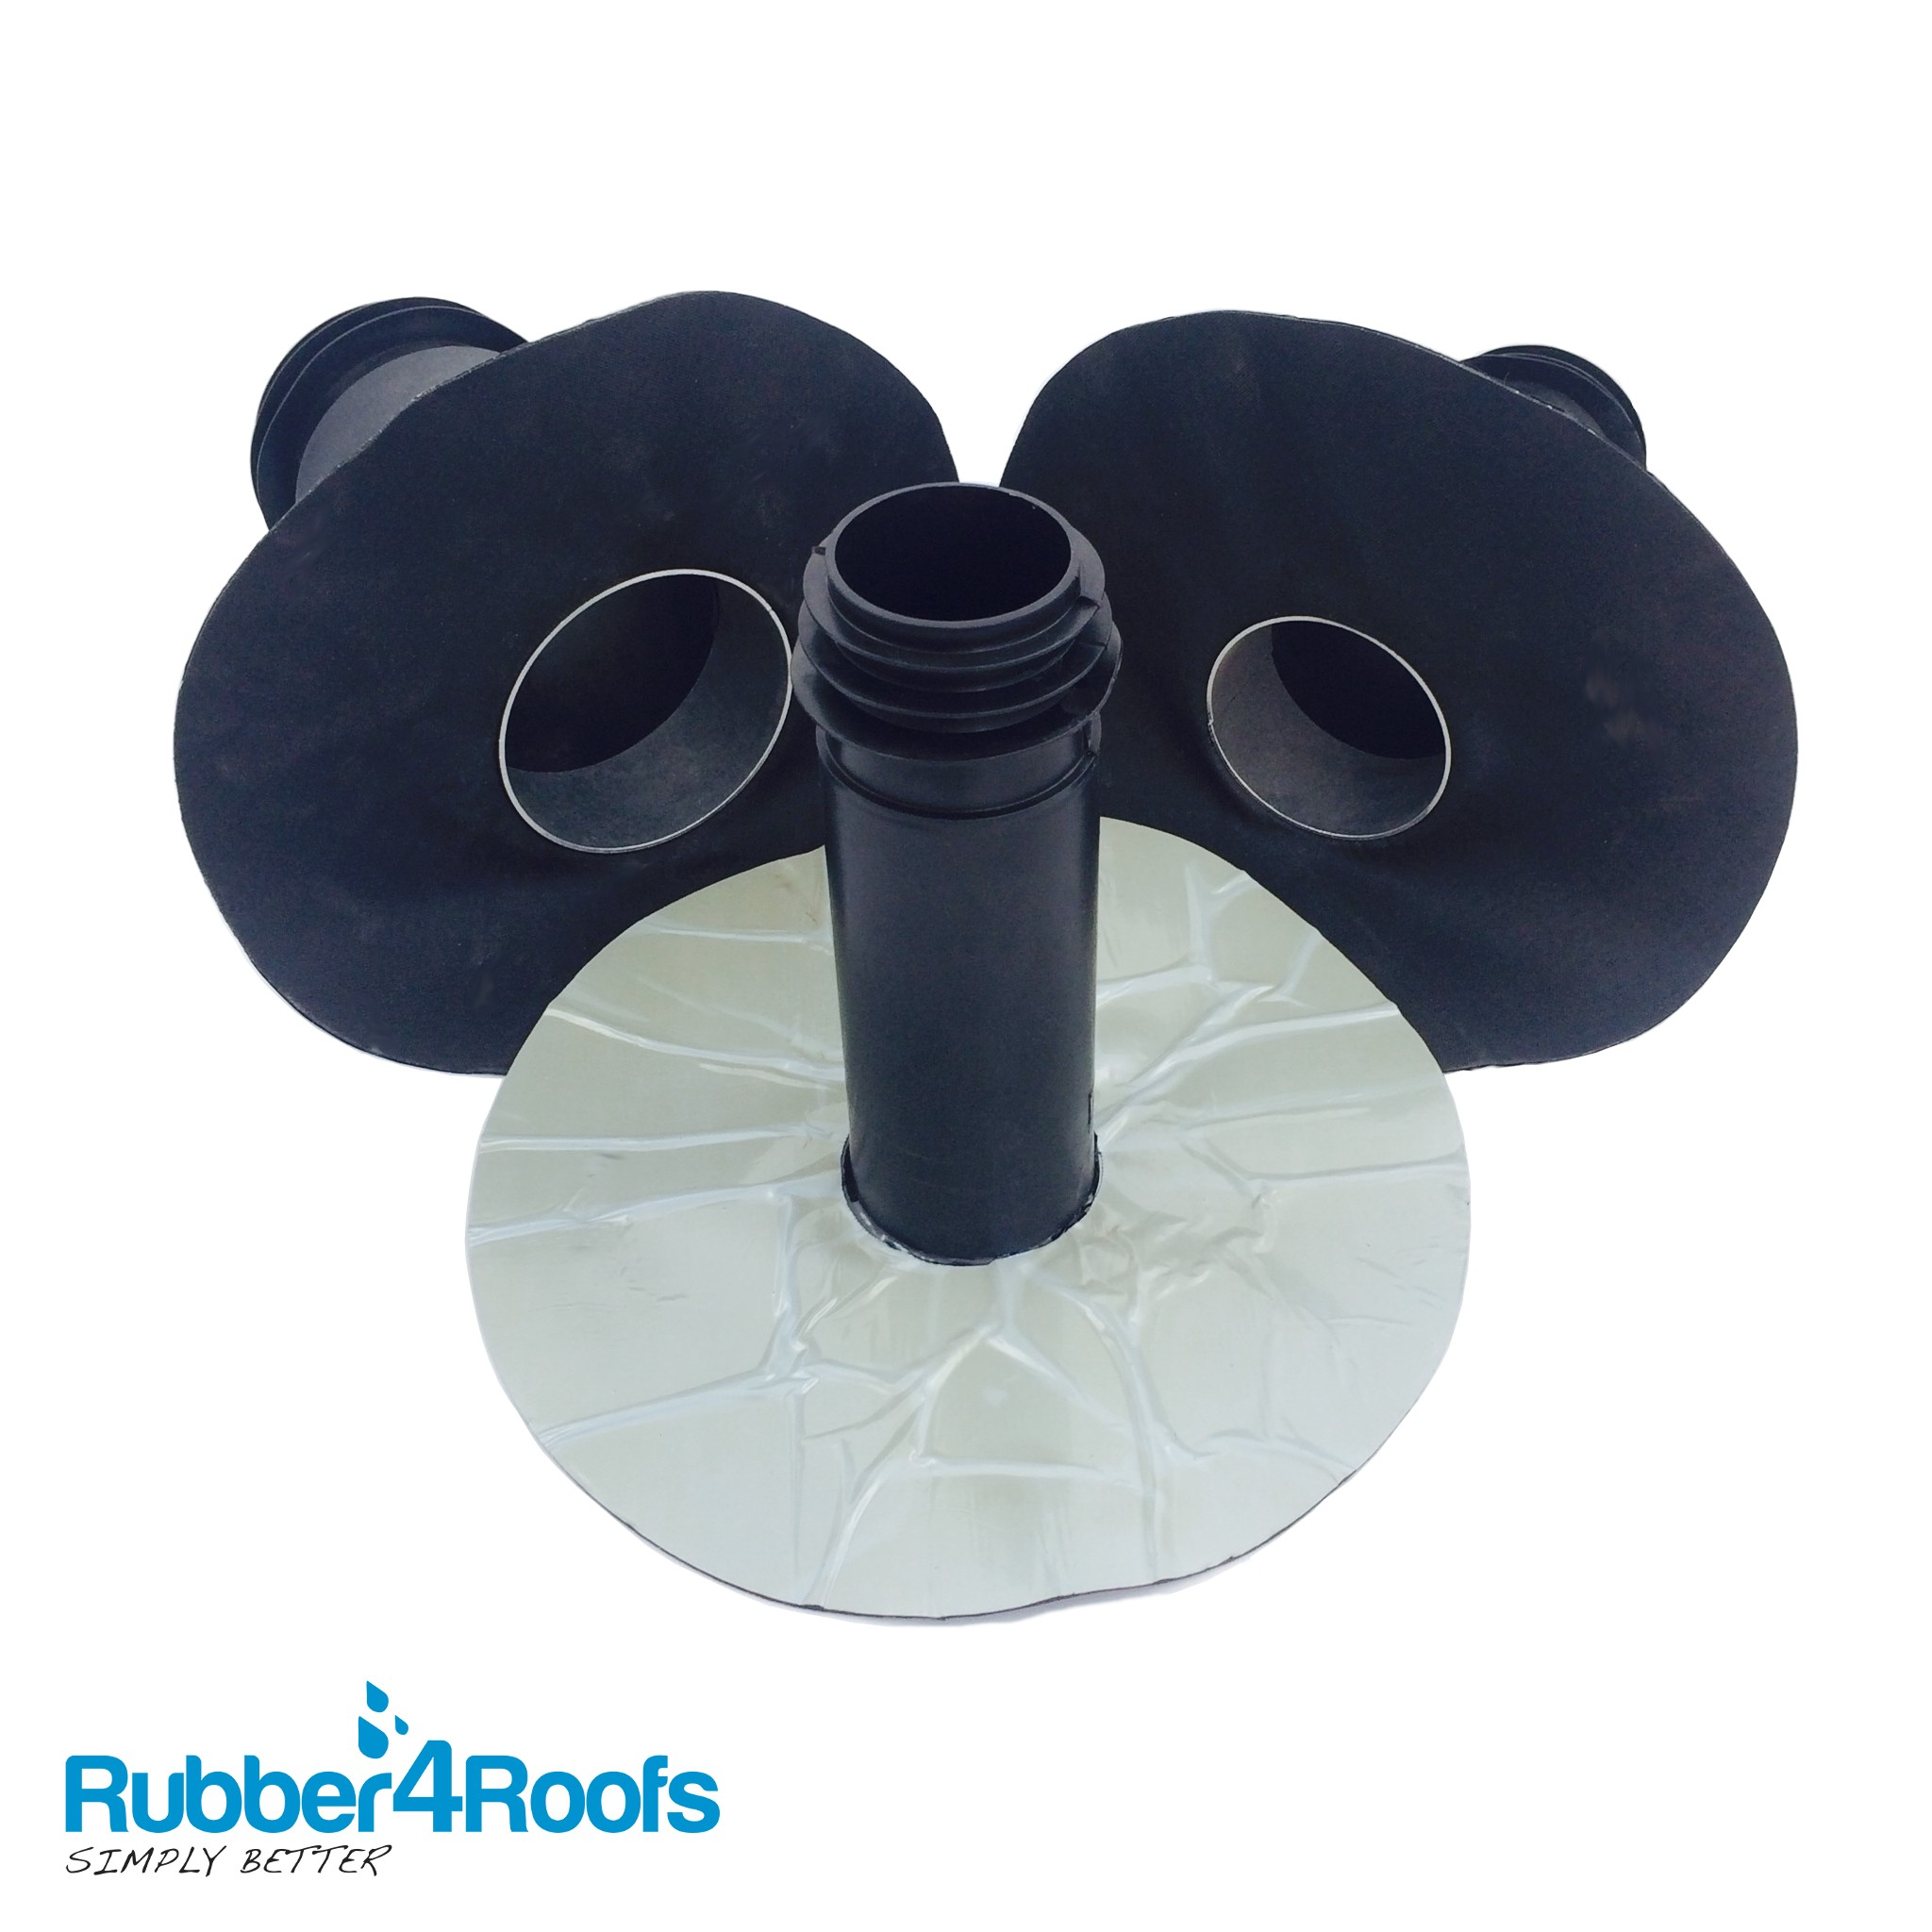 Self Adhesive Drain Outlet Rubber4roofs